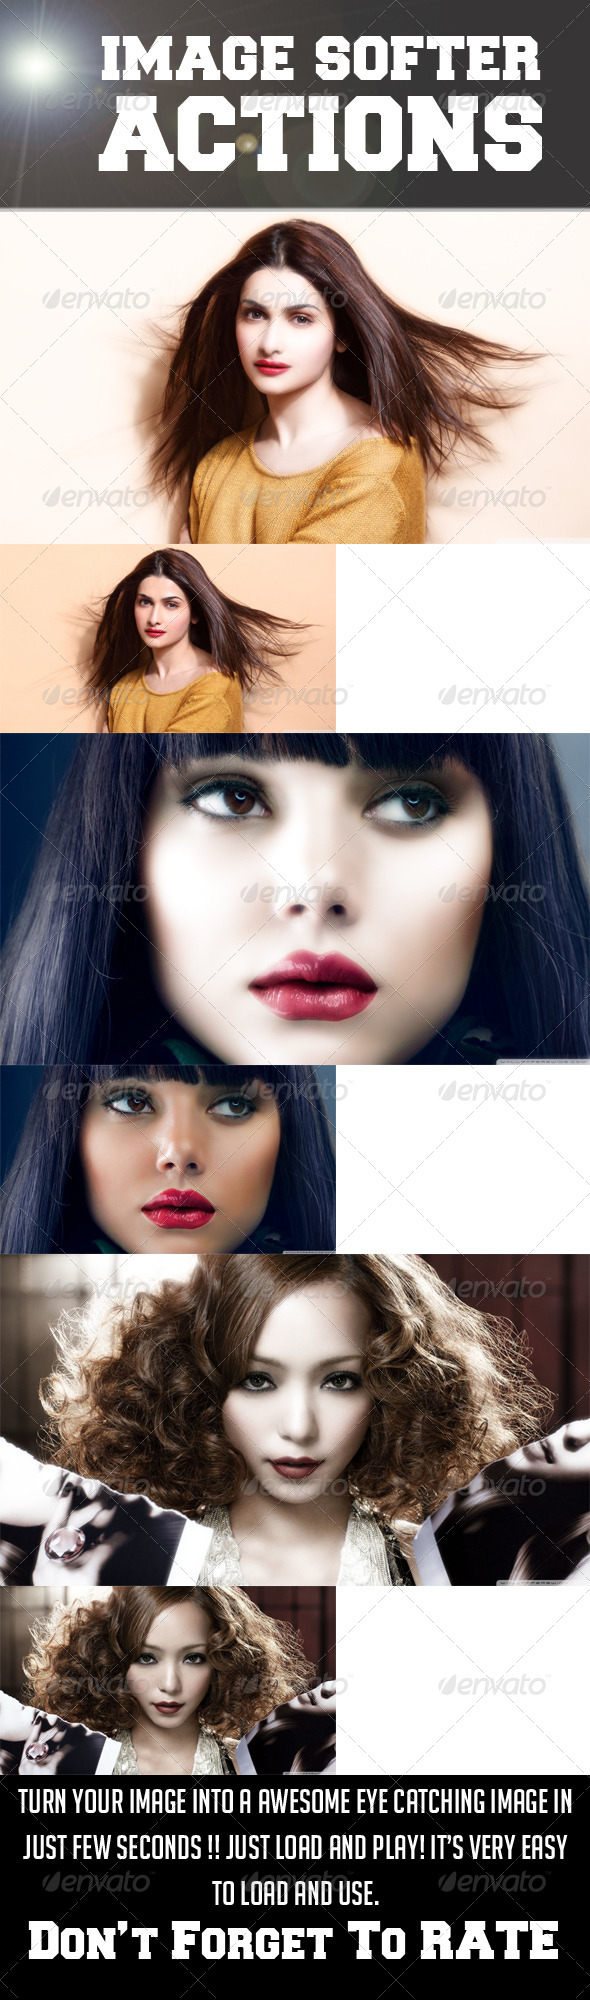 GraphicRiver Image Softness Actions 8094924